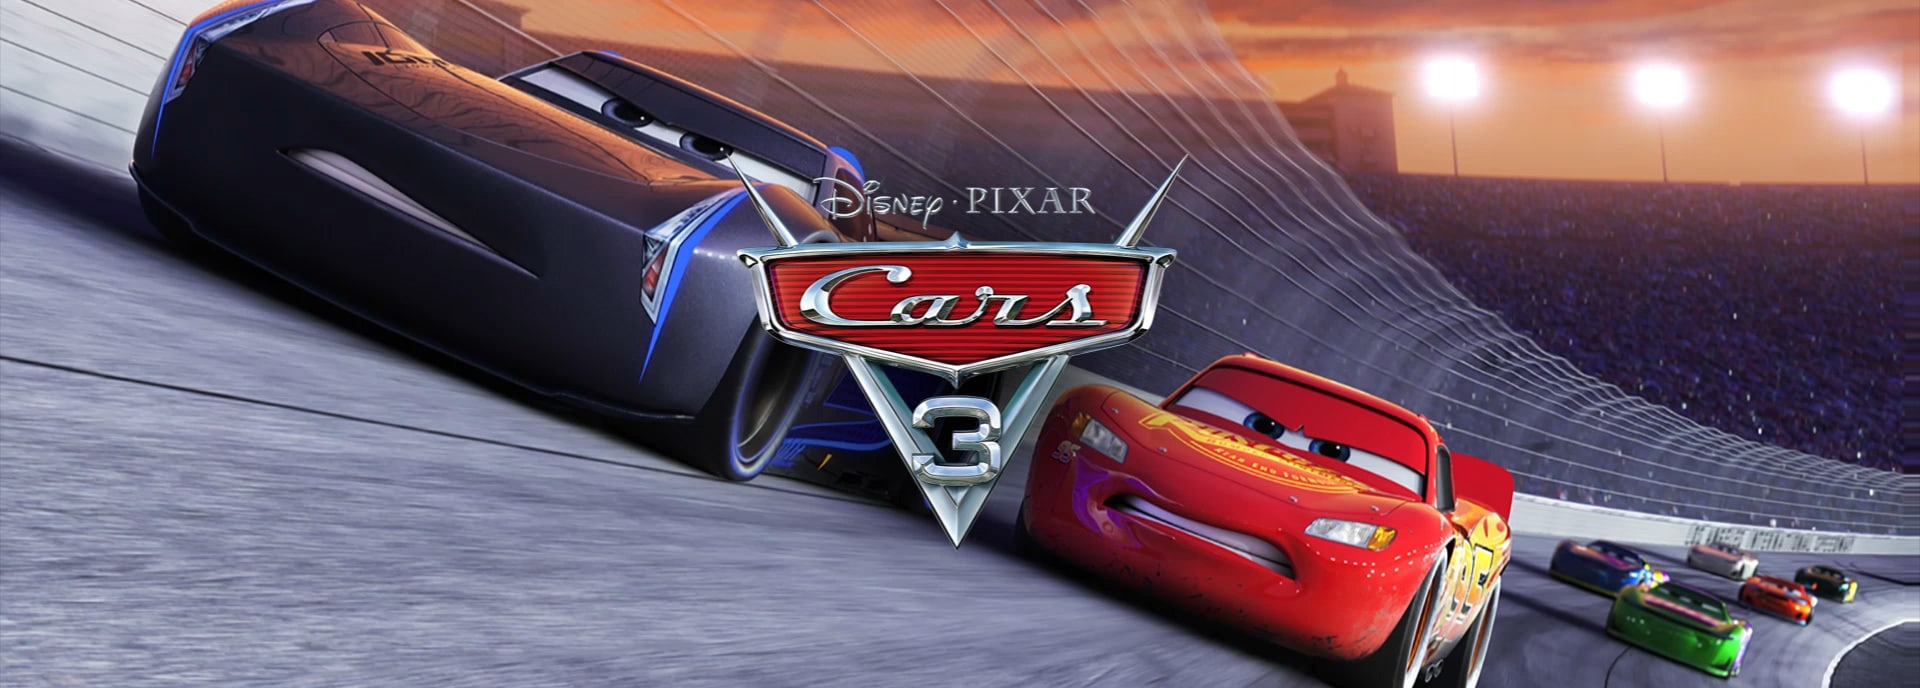 ME-EN - Cars 3 Flex Hero - Animated